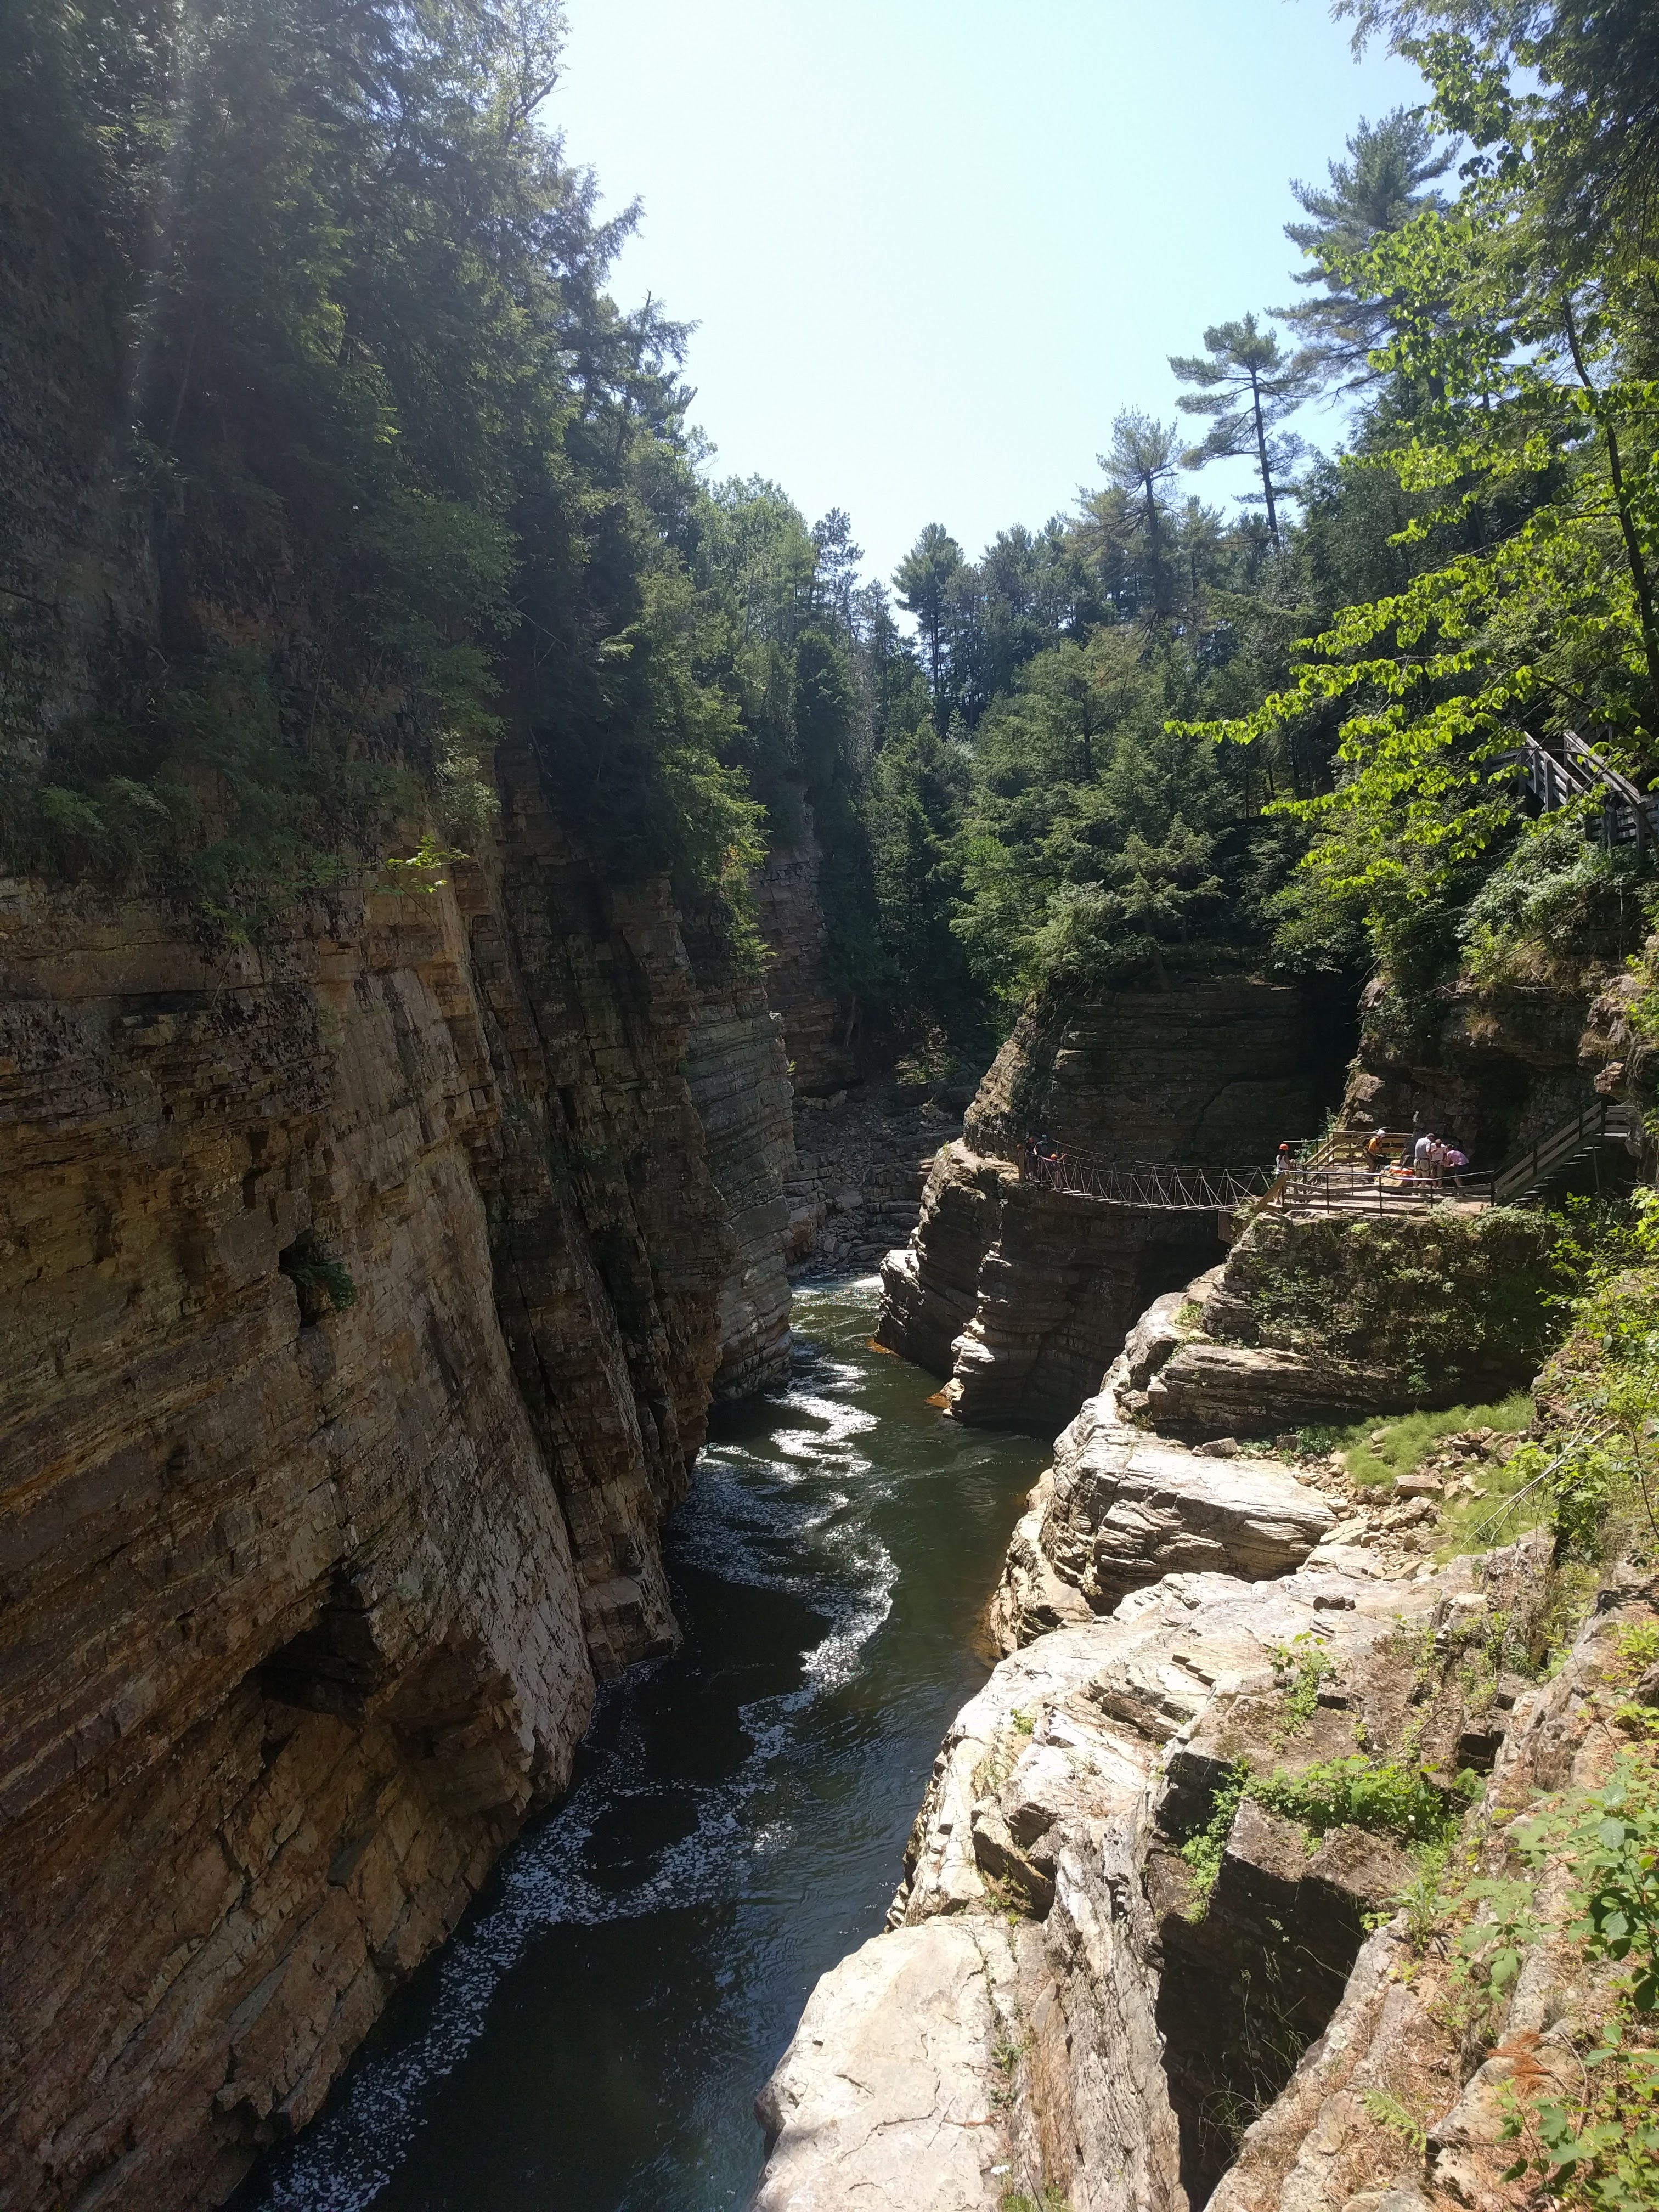 Visiter Ausable Chasm - Paysage